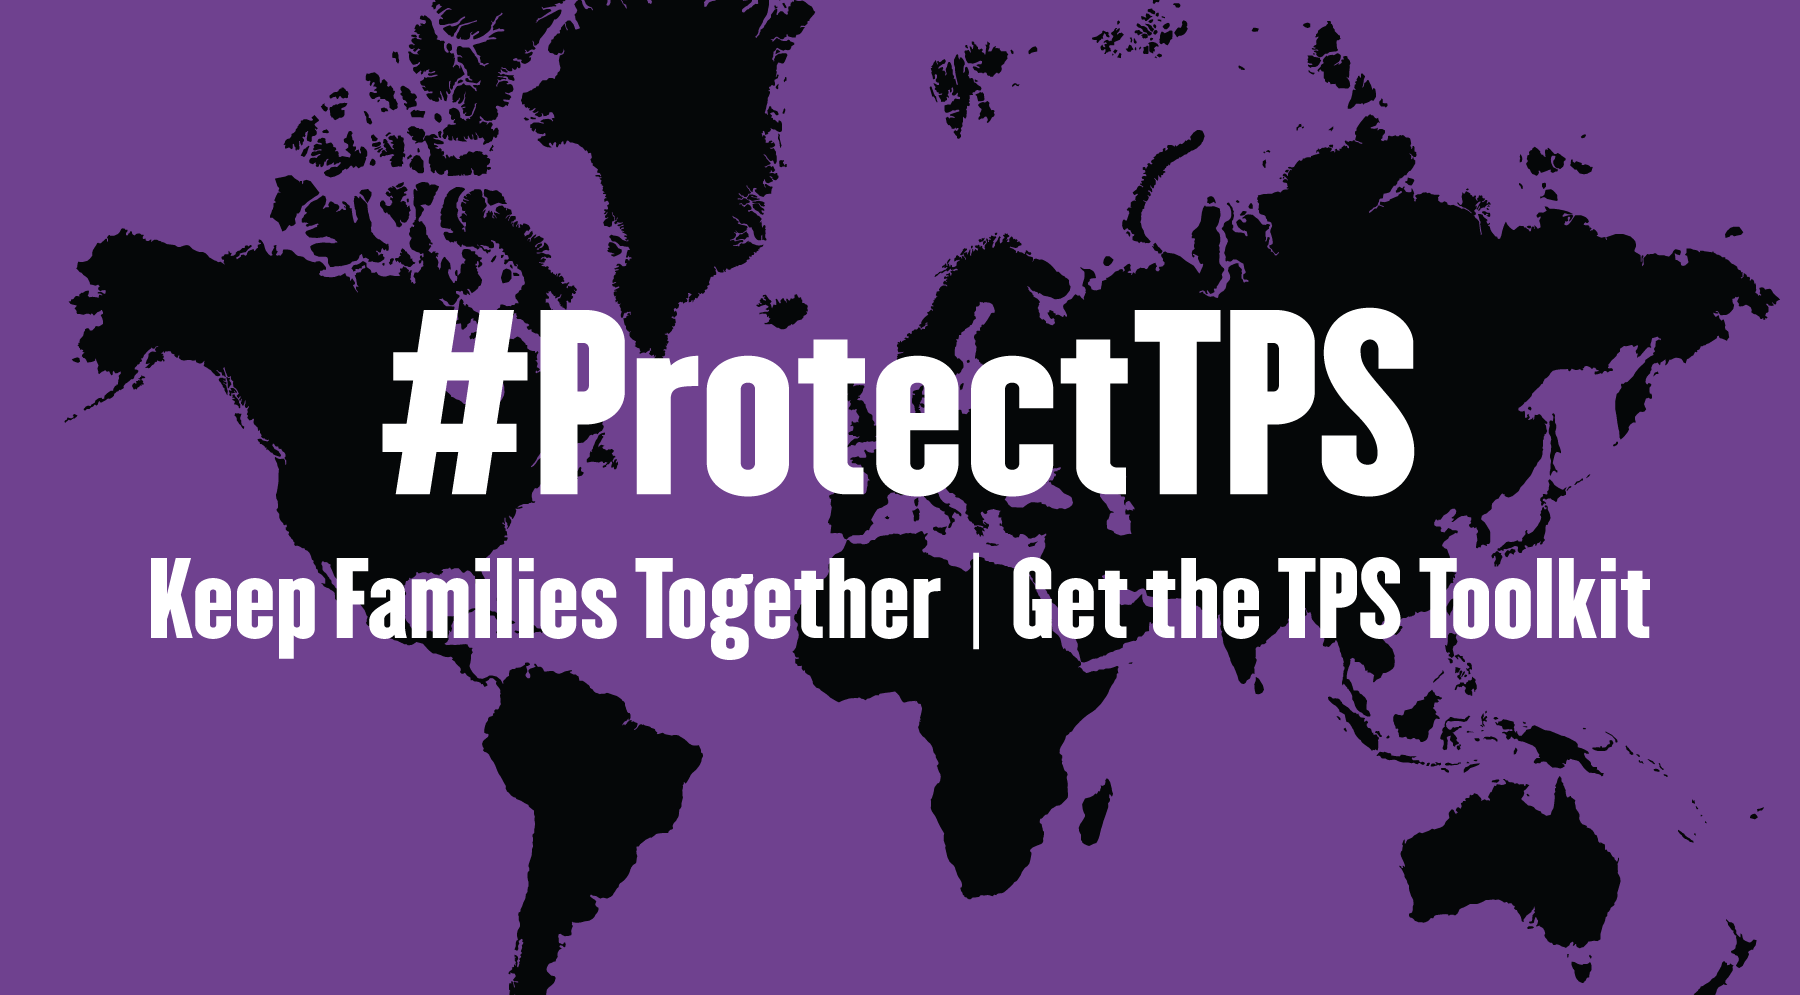 #ProtectTPS